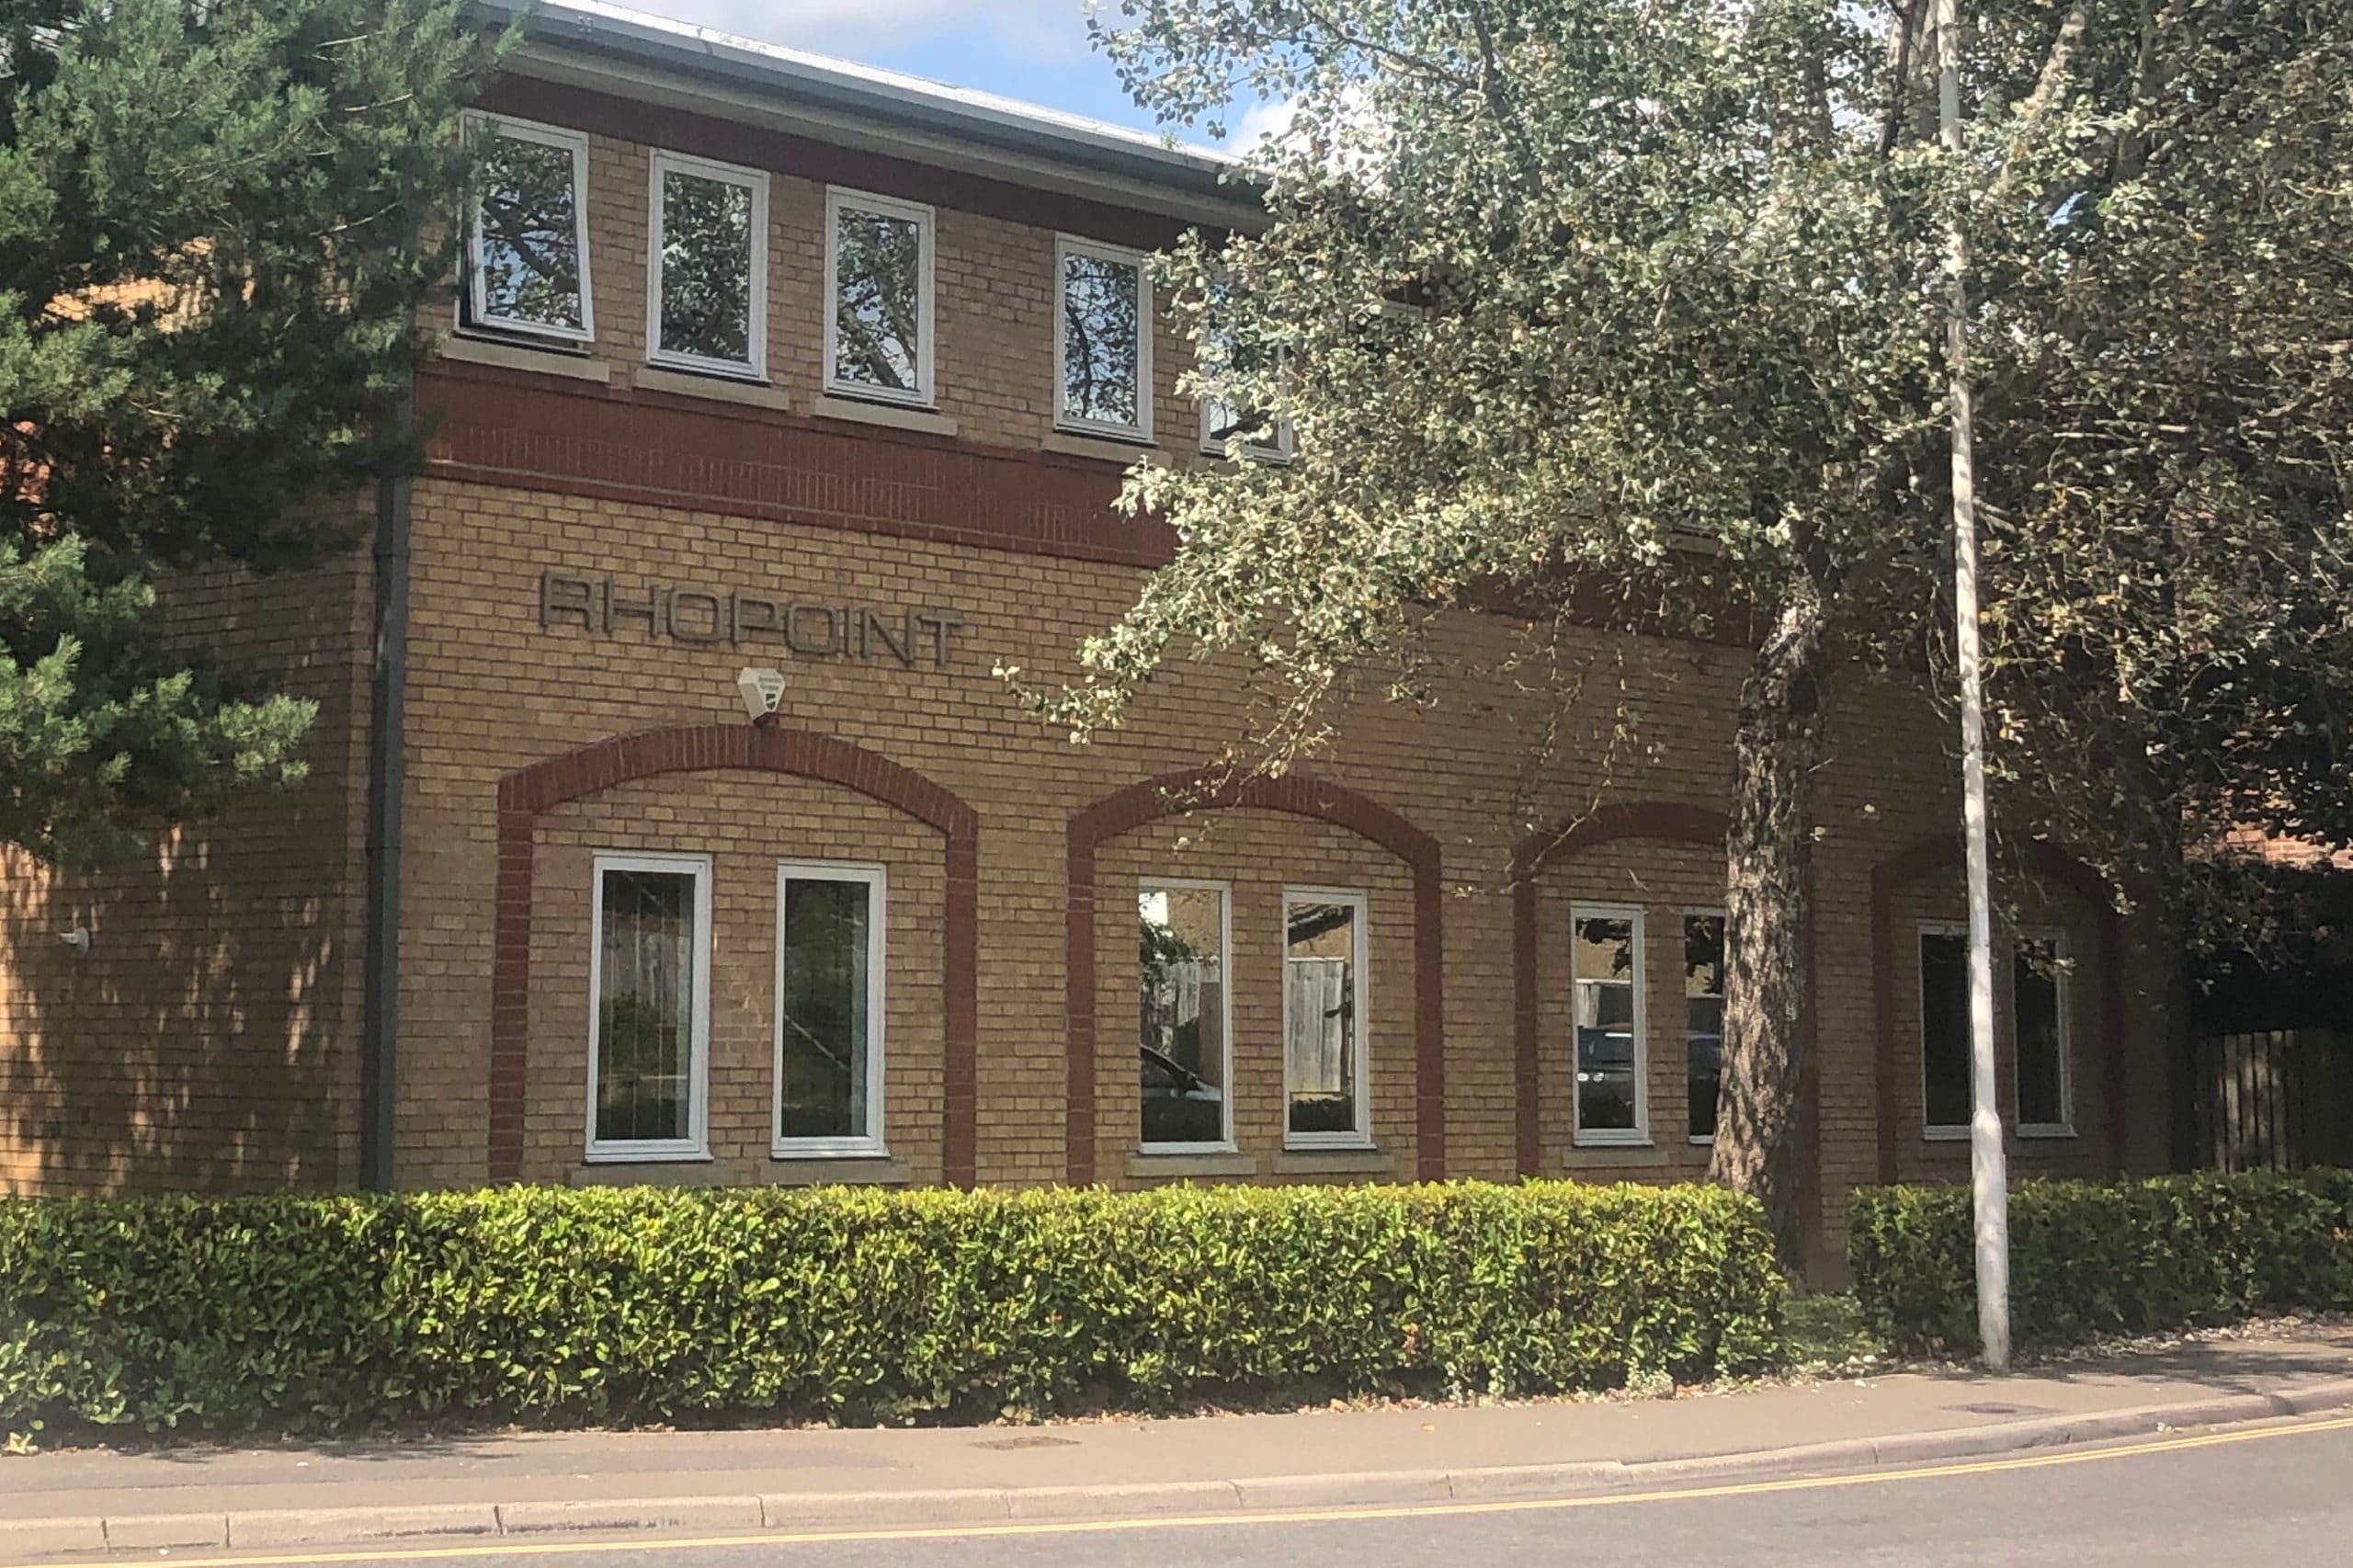 Image of the Rhopoint Holding head office building in East Grinstead, West Sussex